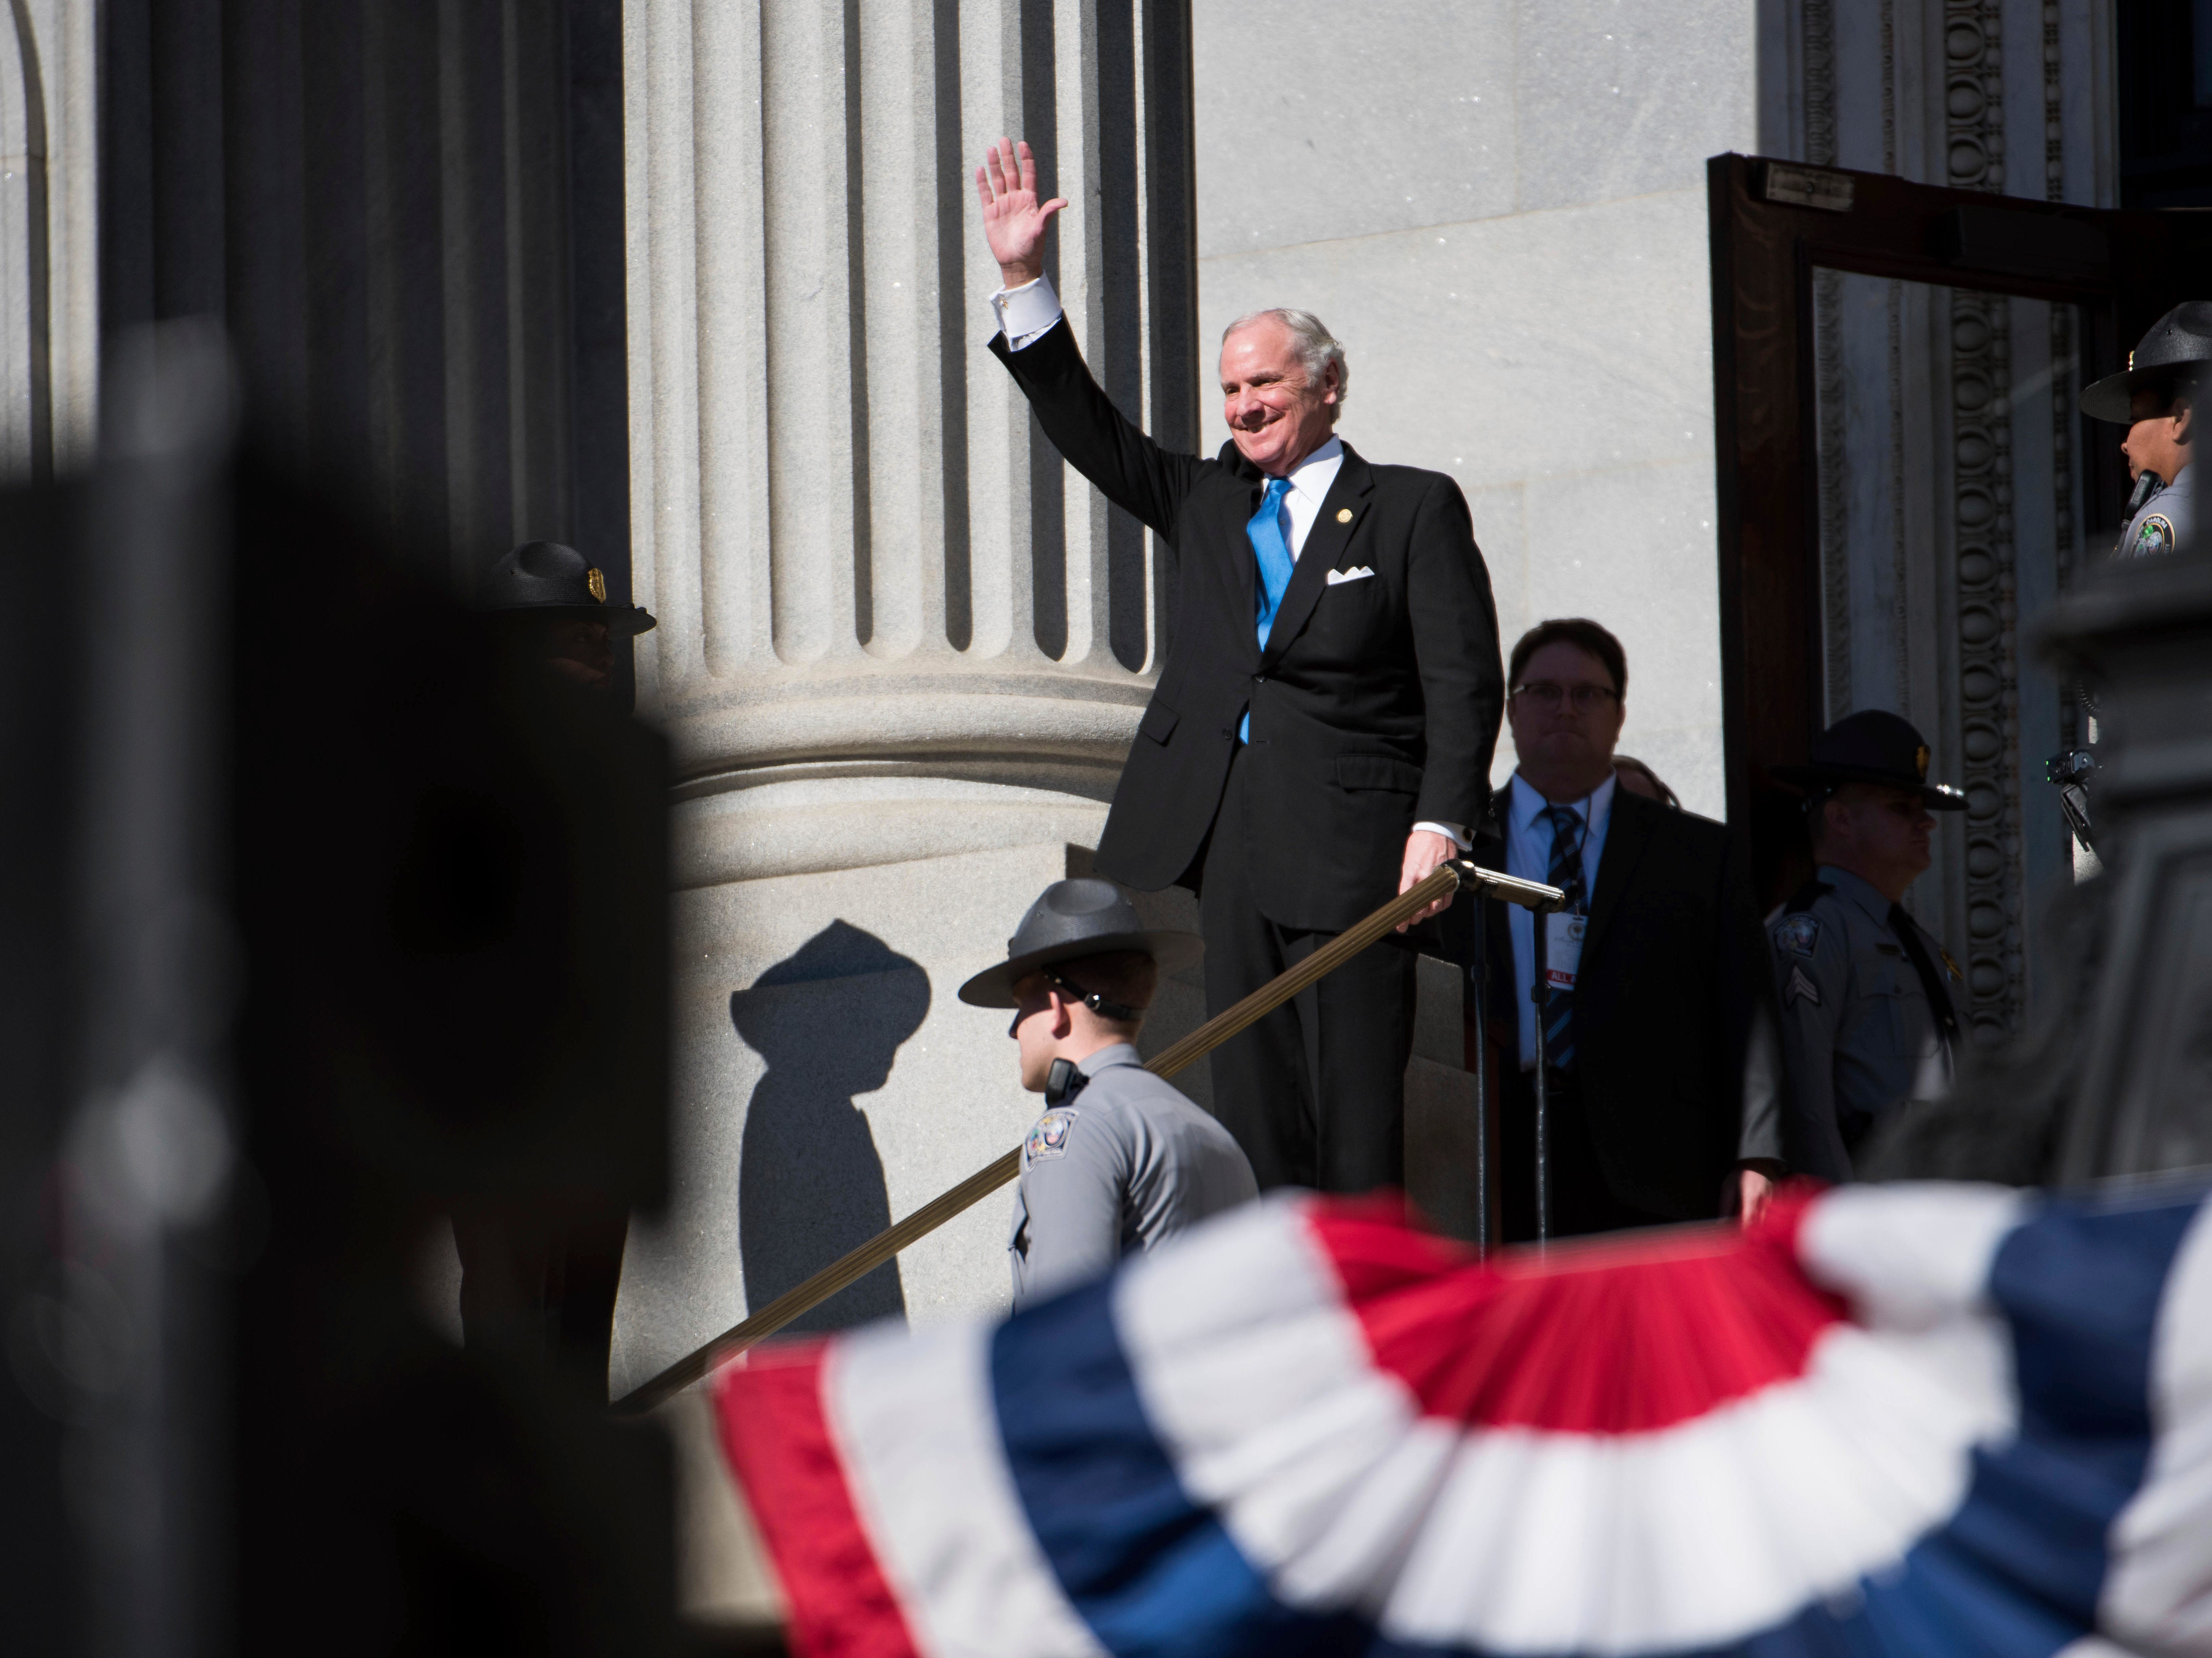 Record $21.5 million poured into South Carolina governor's race, including from Hollywood